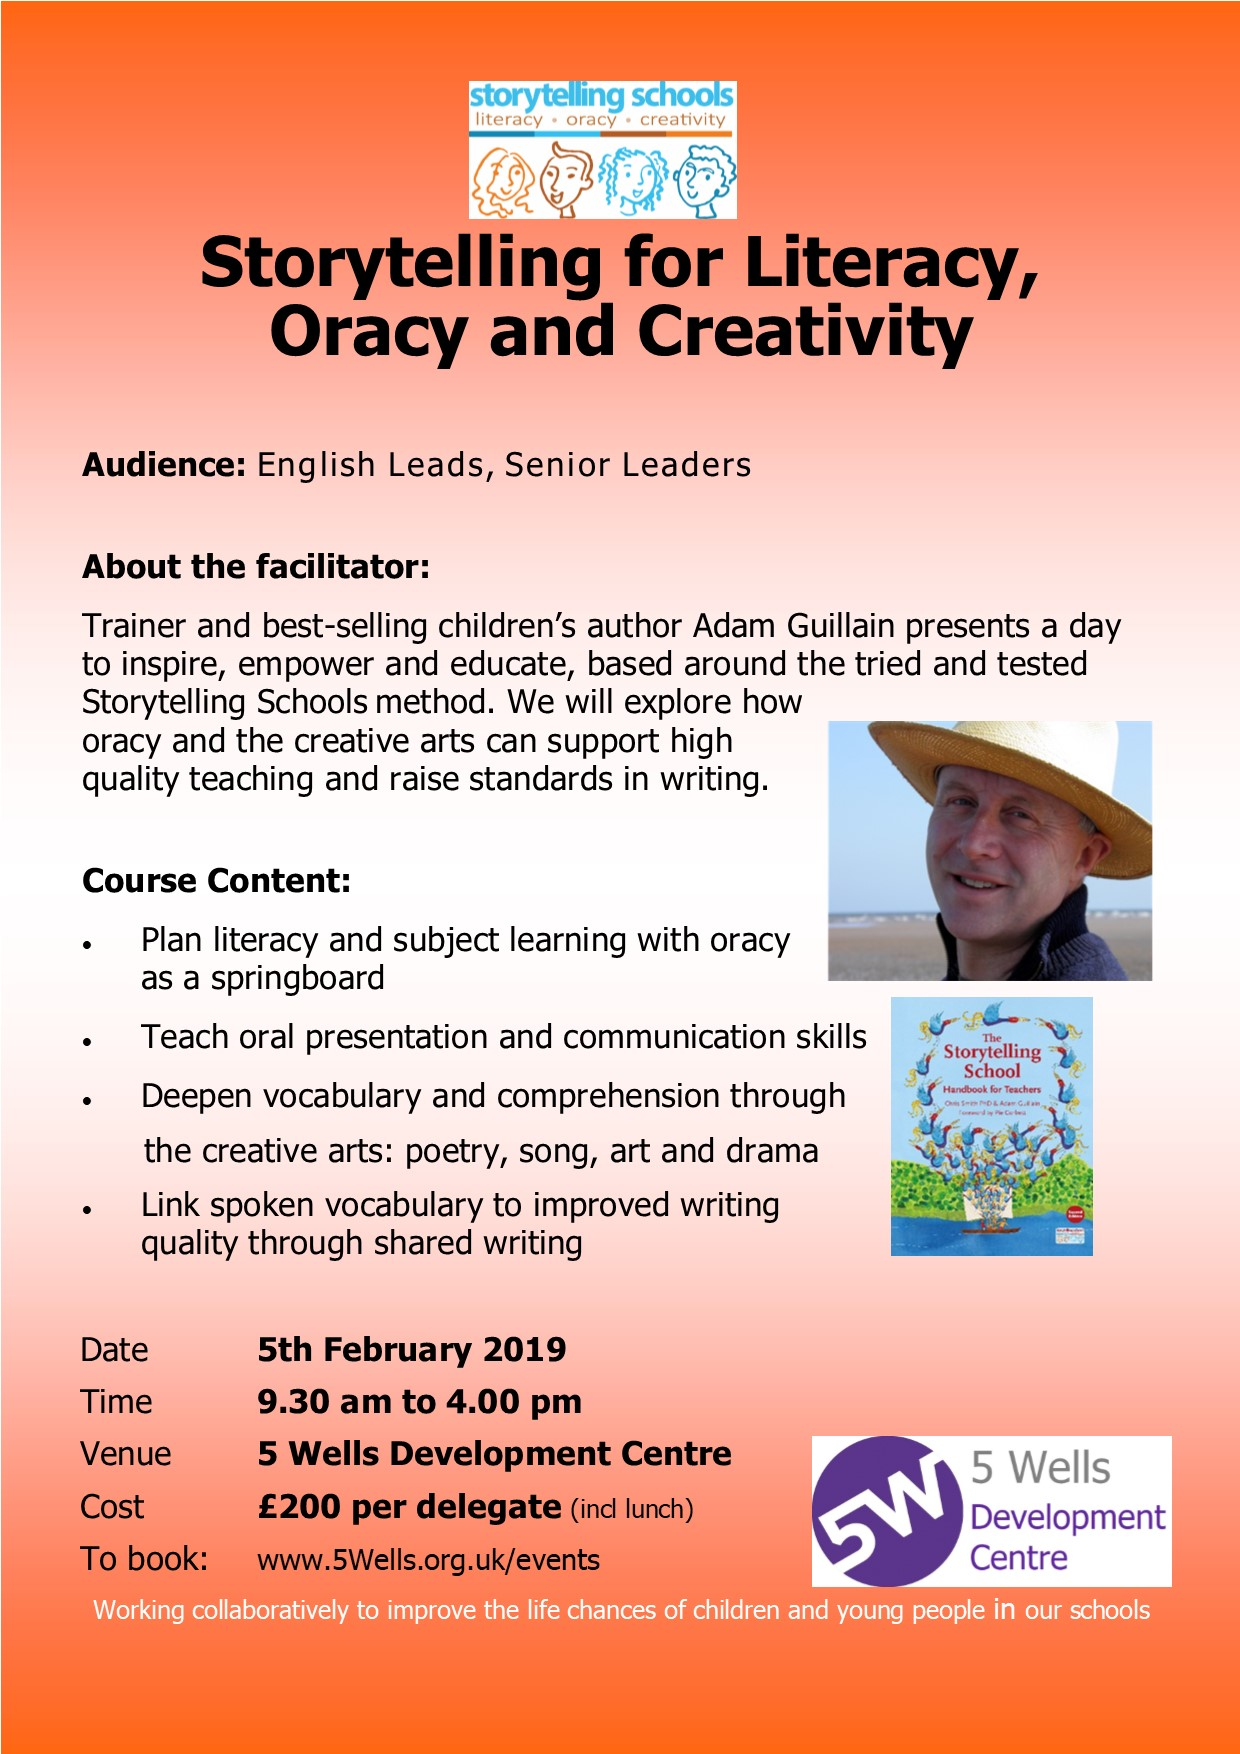 ST0502 Storytelling for Literacy Oracy and Creativity